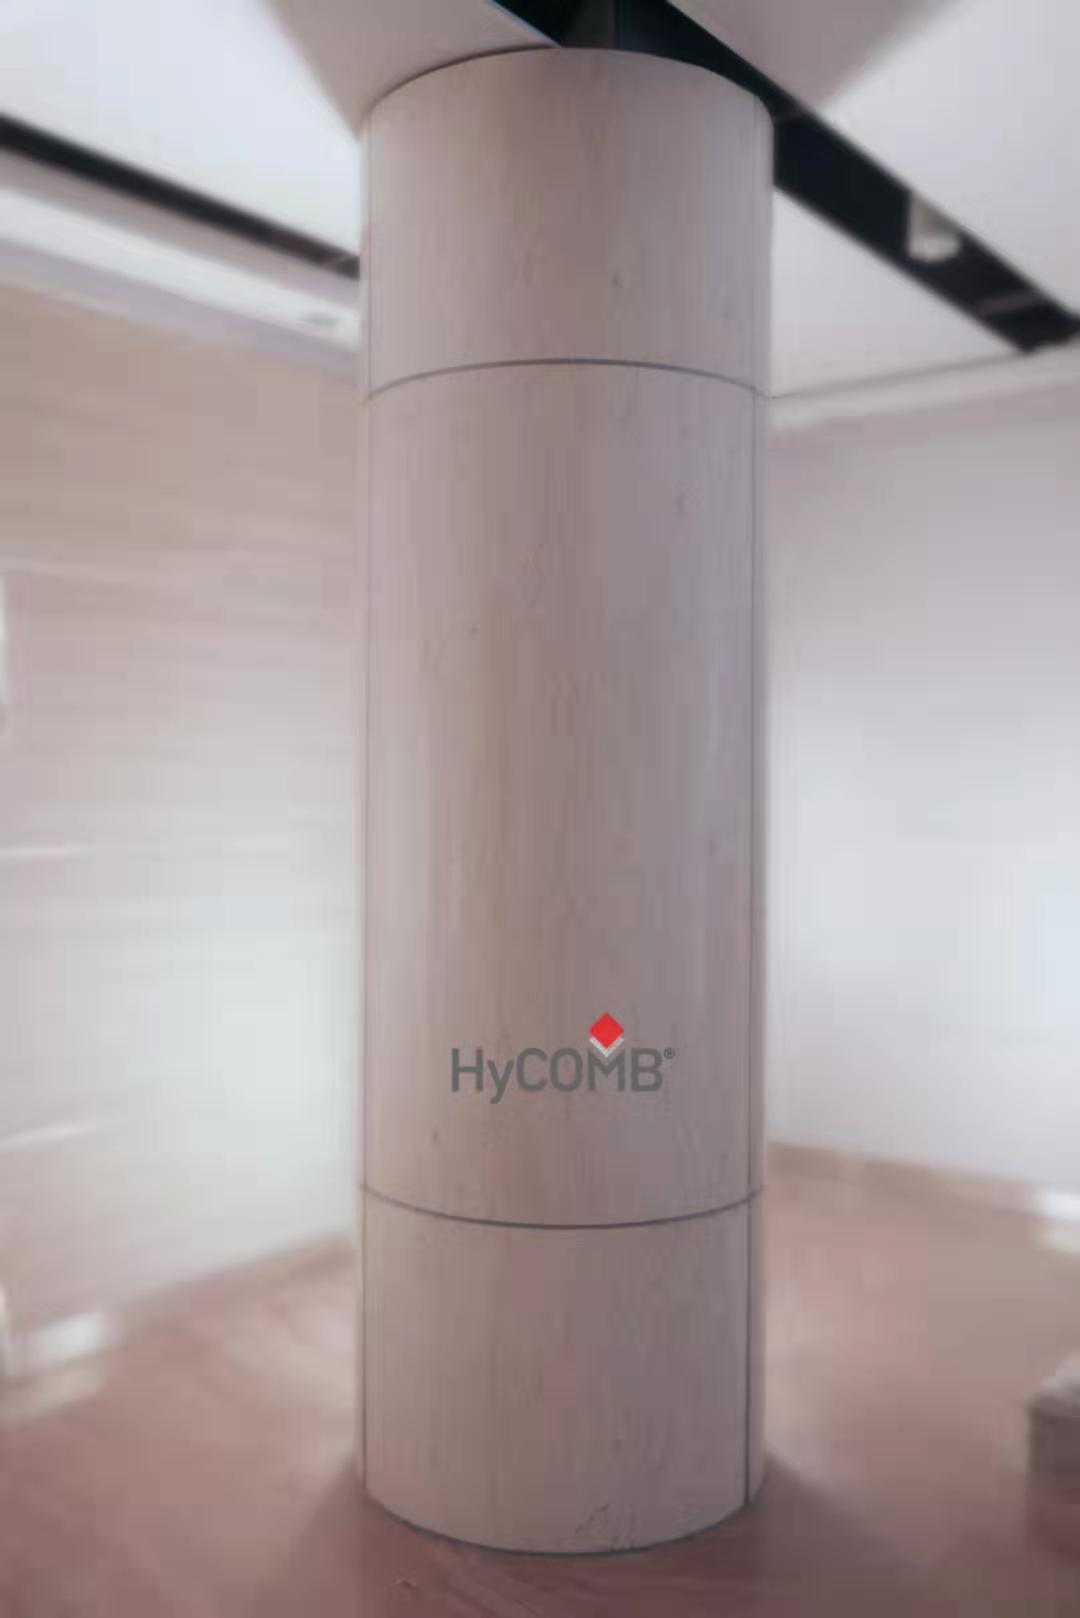 HyCOMB's curved stone honeycomb panels applied for a structural column column